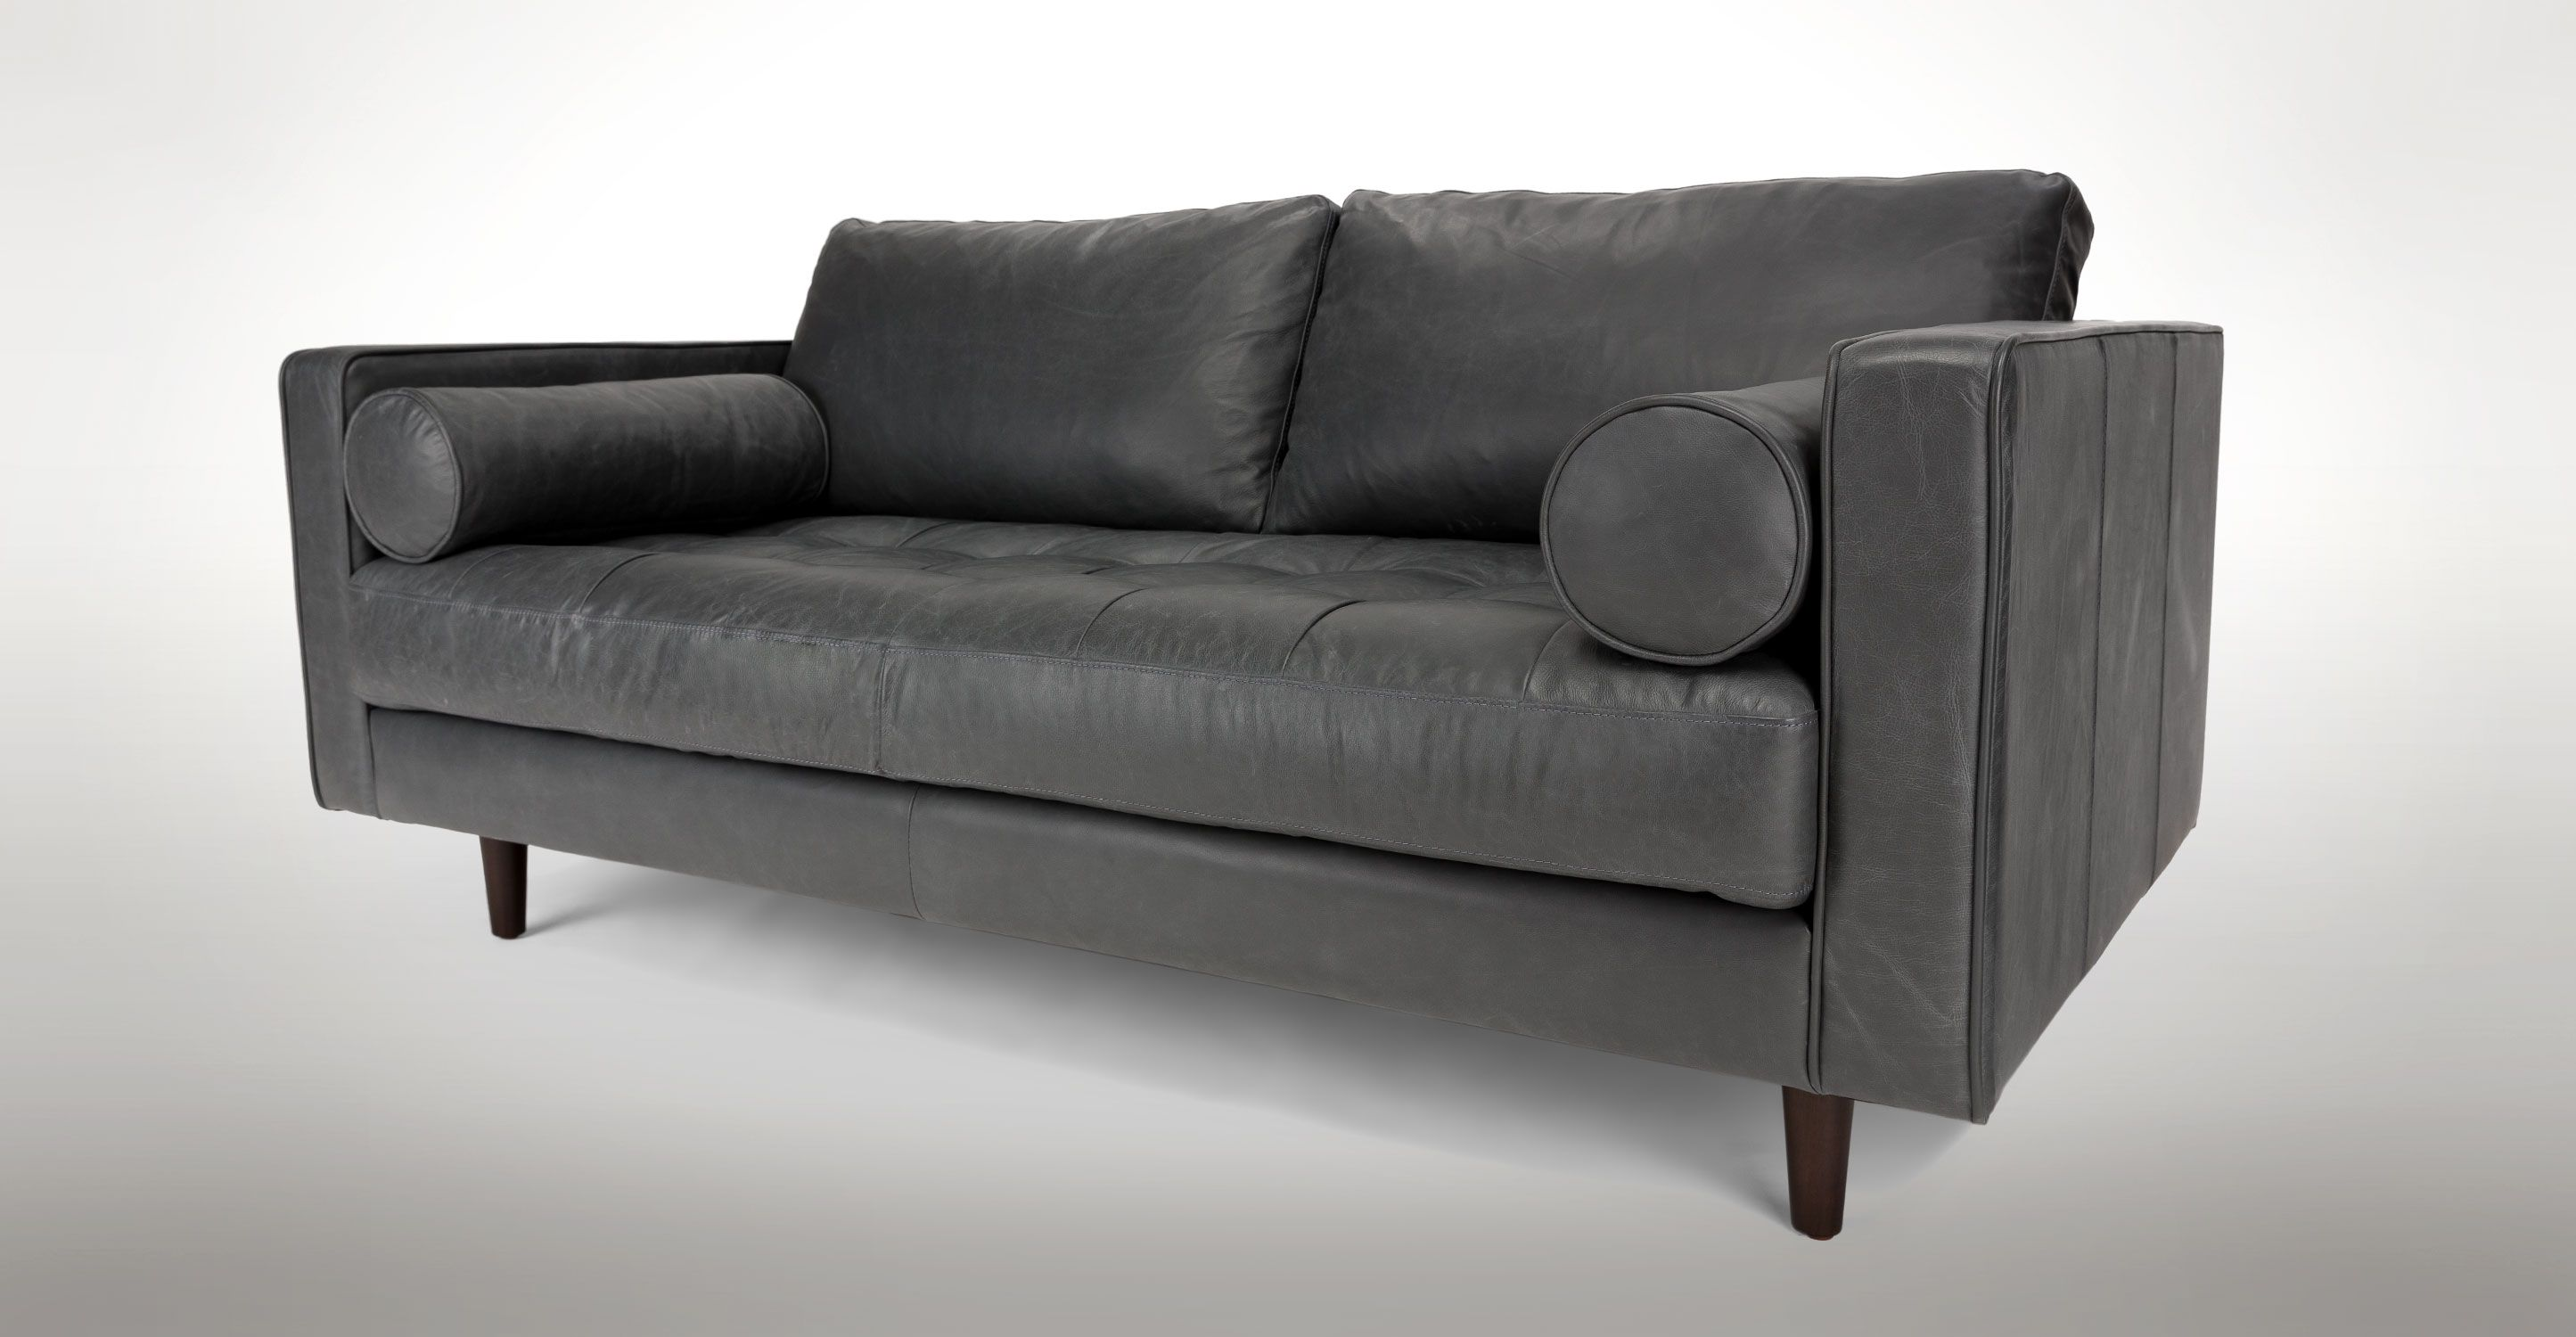 Gray Leather Tufted Sofa Upholstered